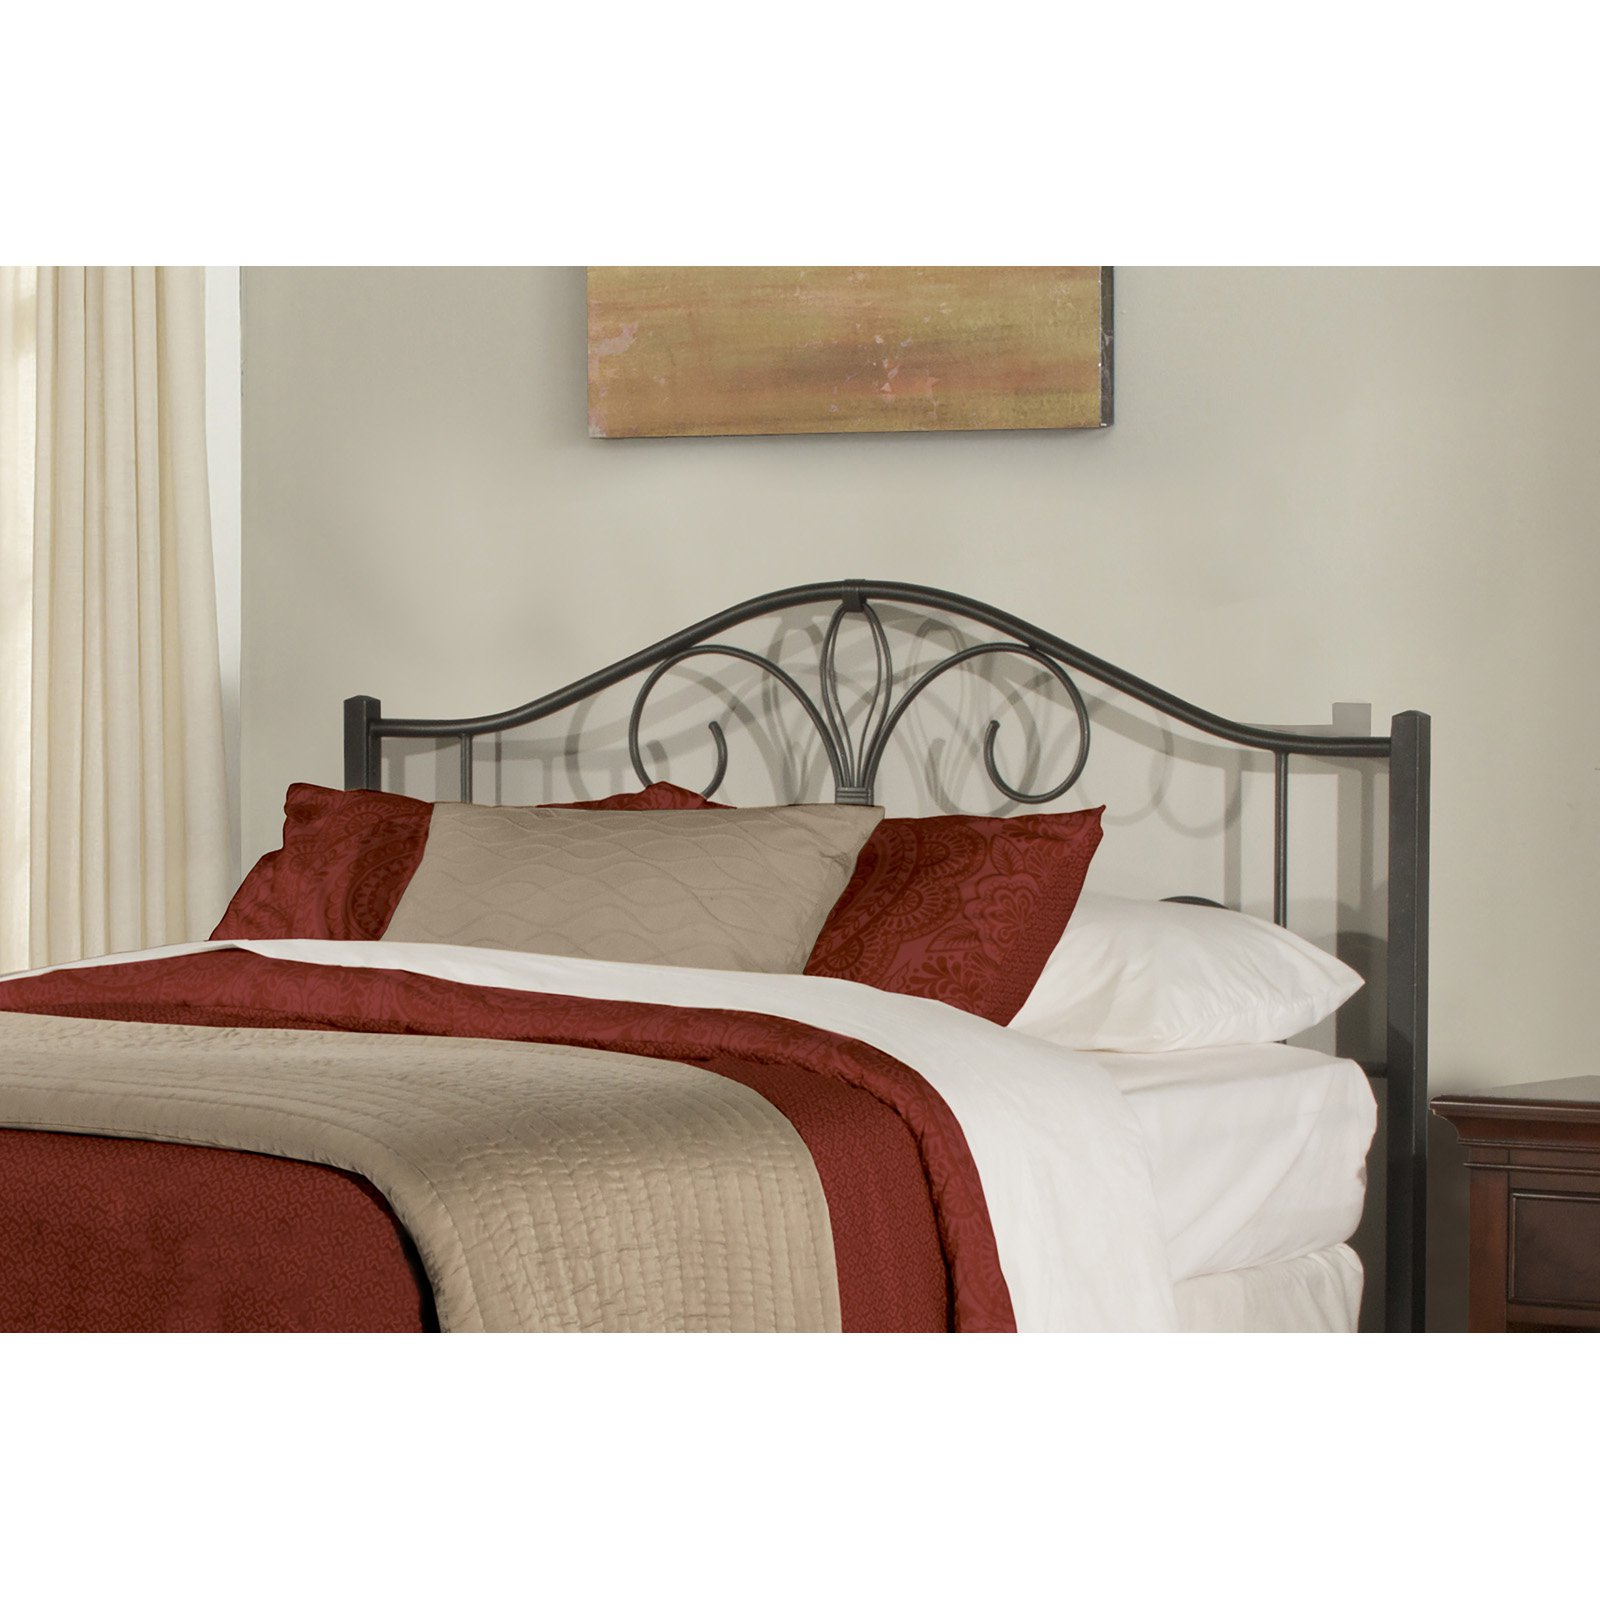 Hillsdale Furniture Kenosha Headboard, Multiple Sizes